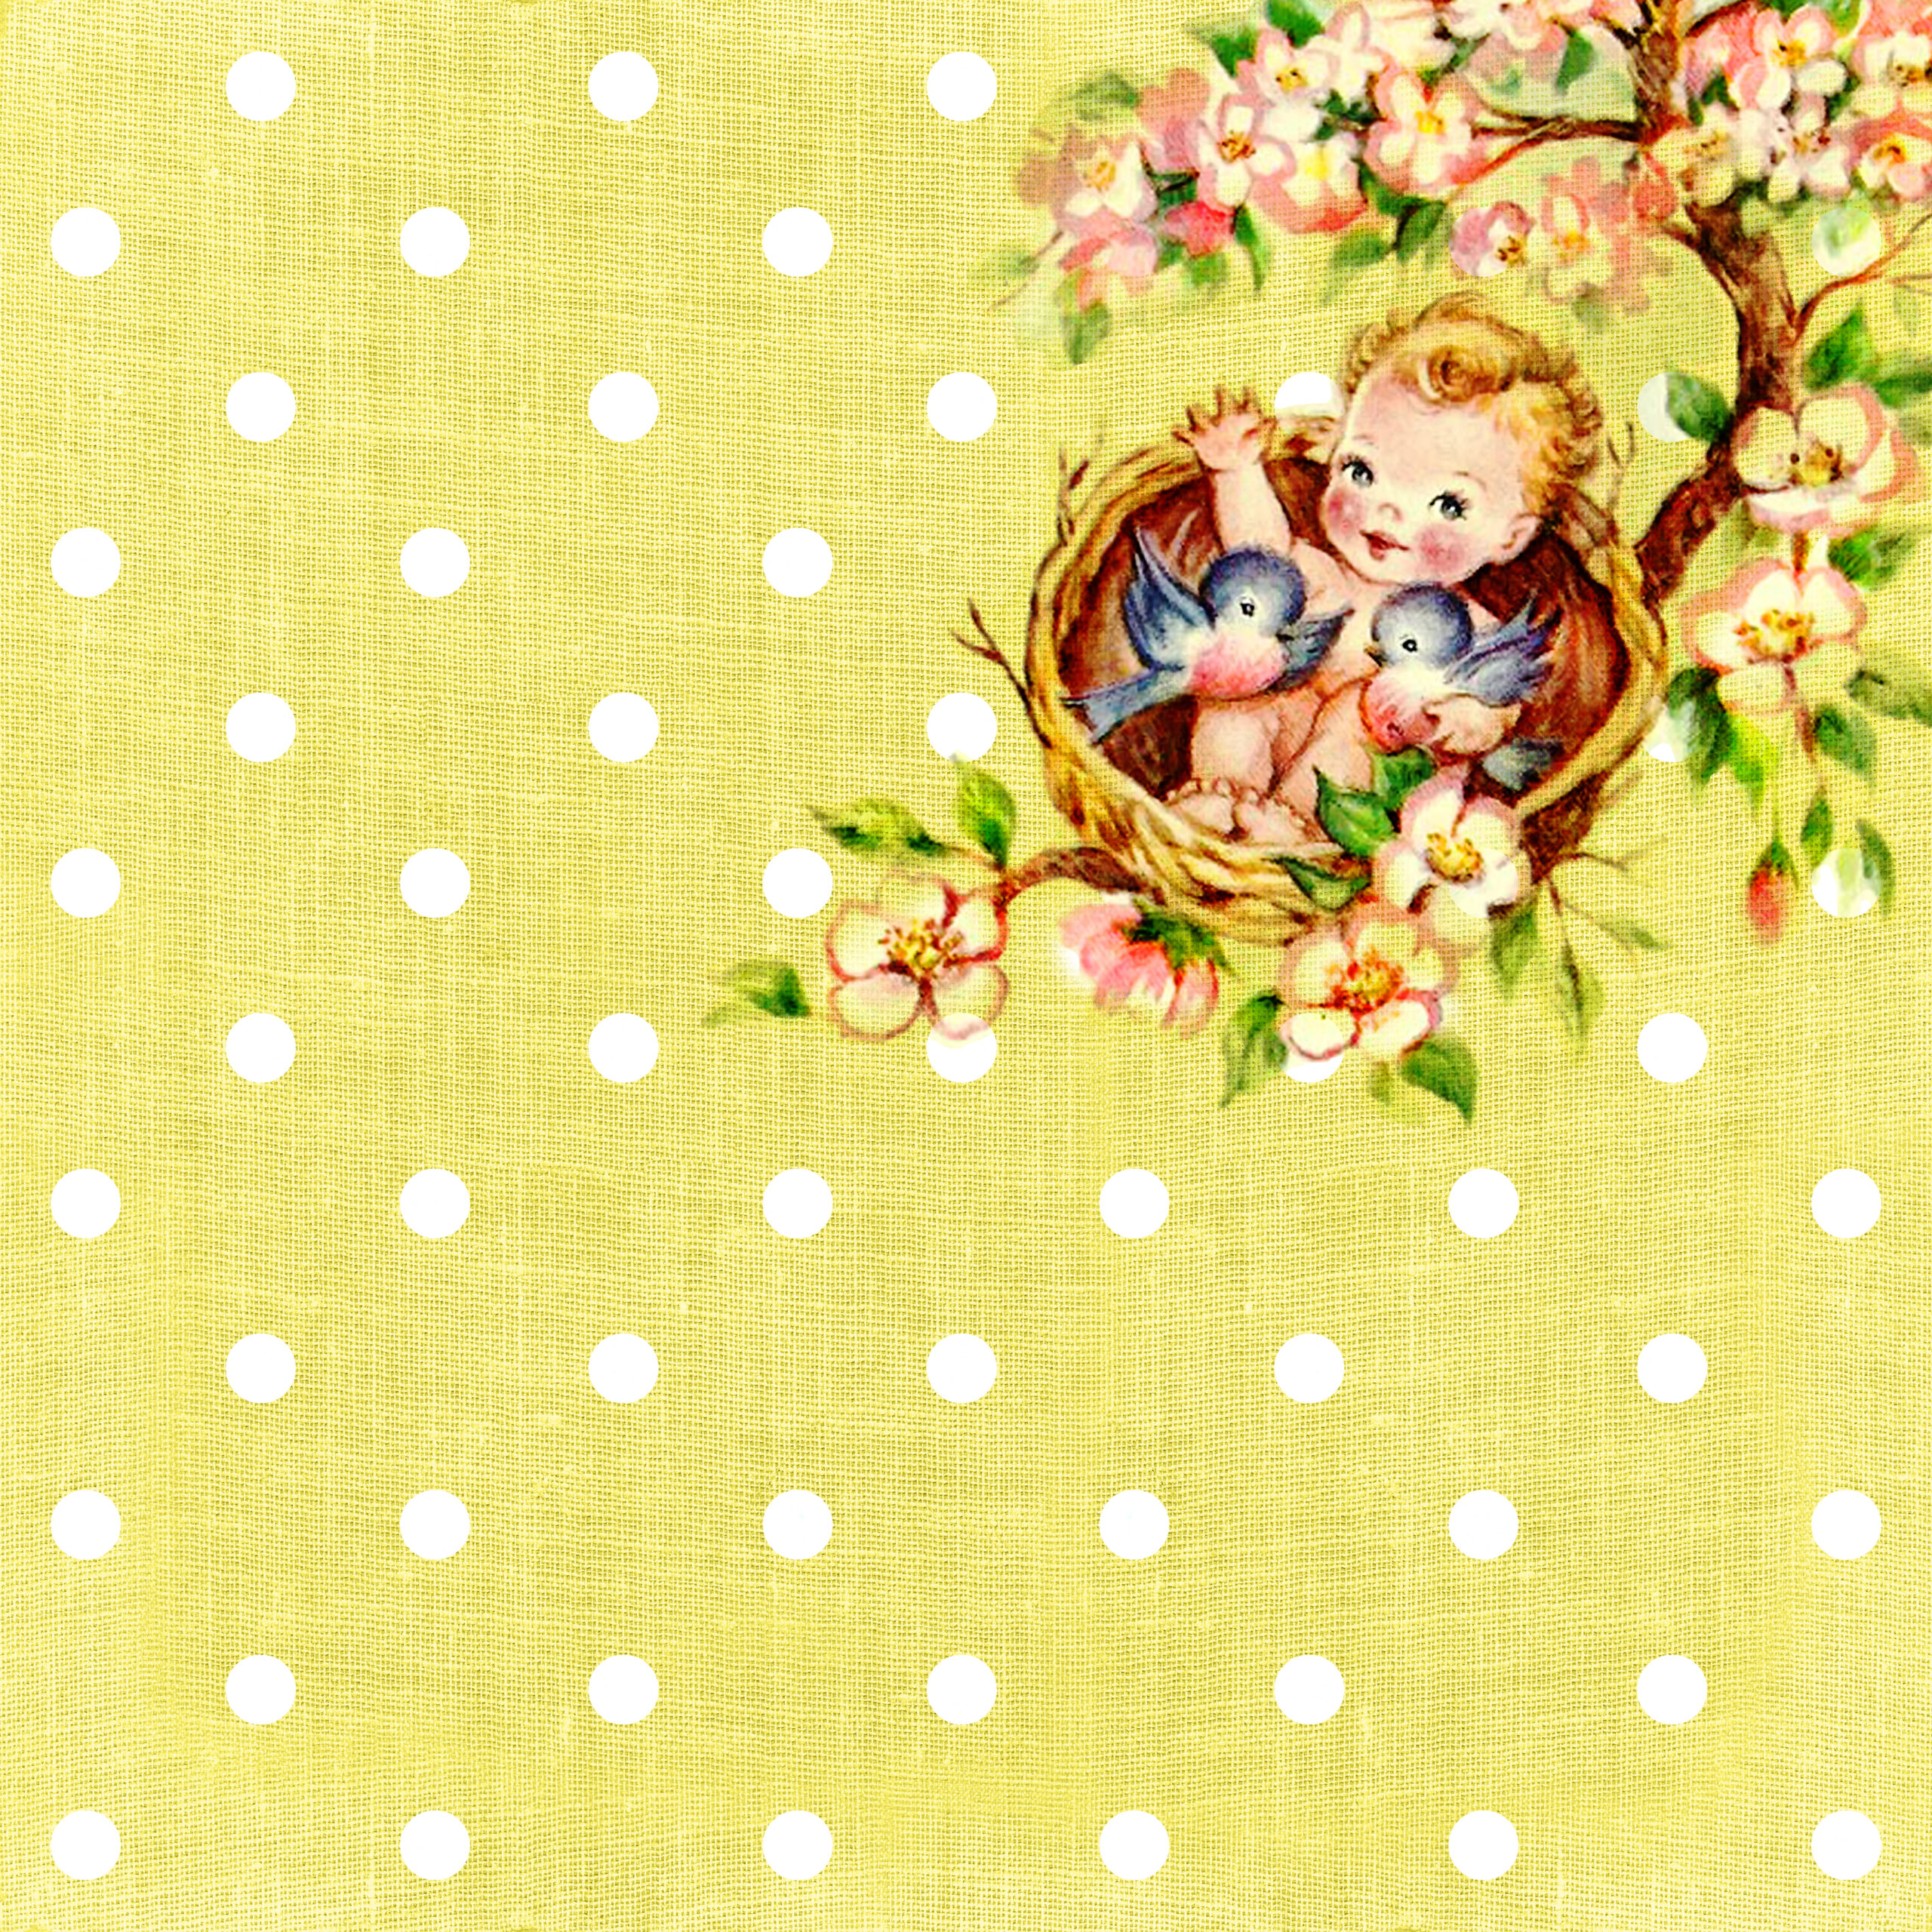 Free Digital Scrapbooking Paper Vintage Baby On The Tree Top Part 1